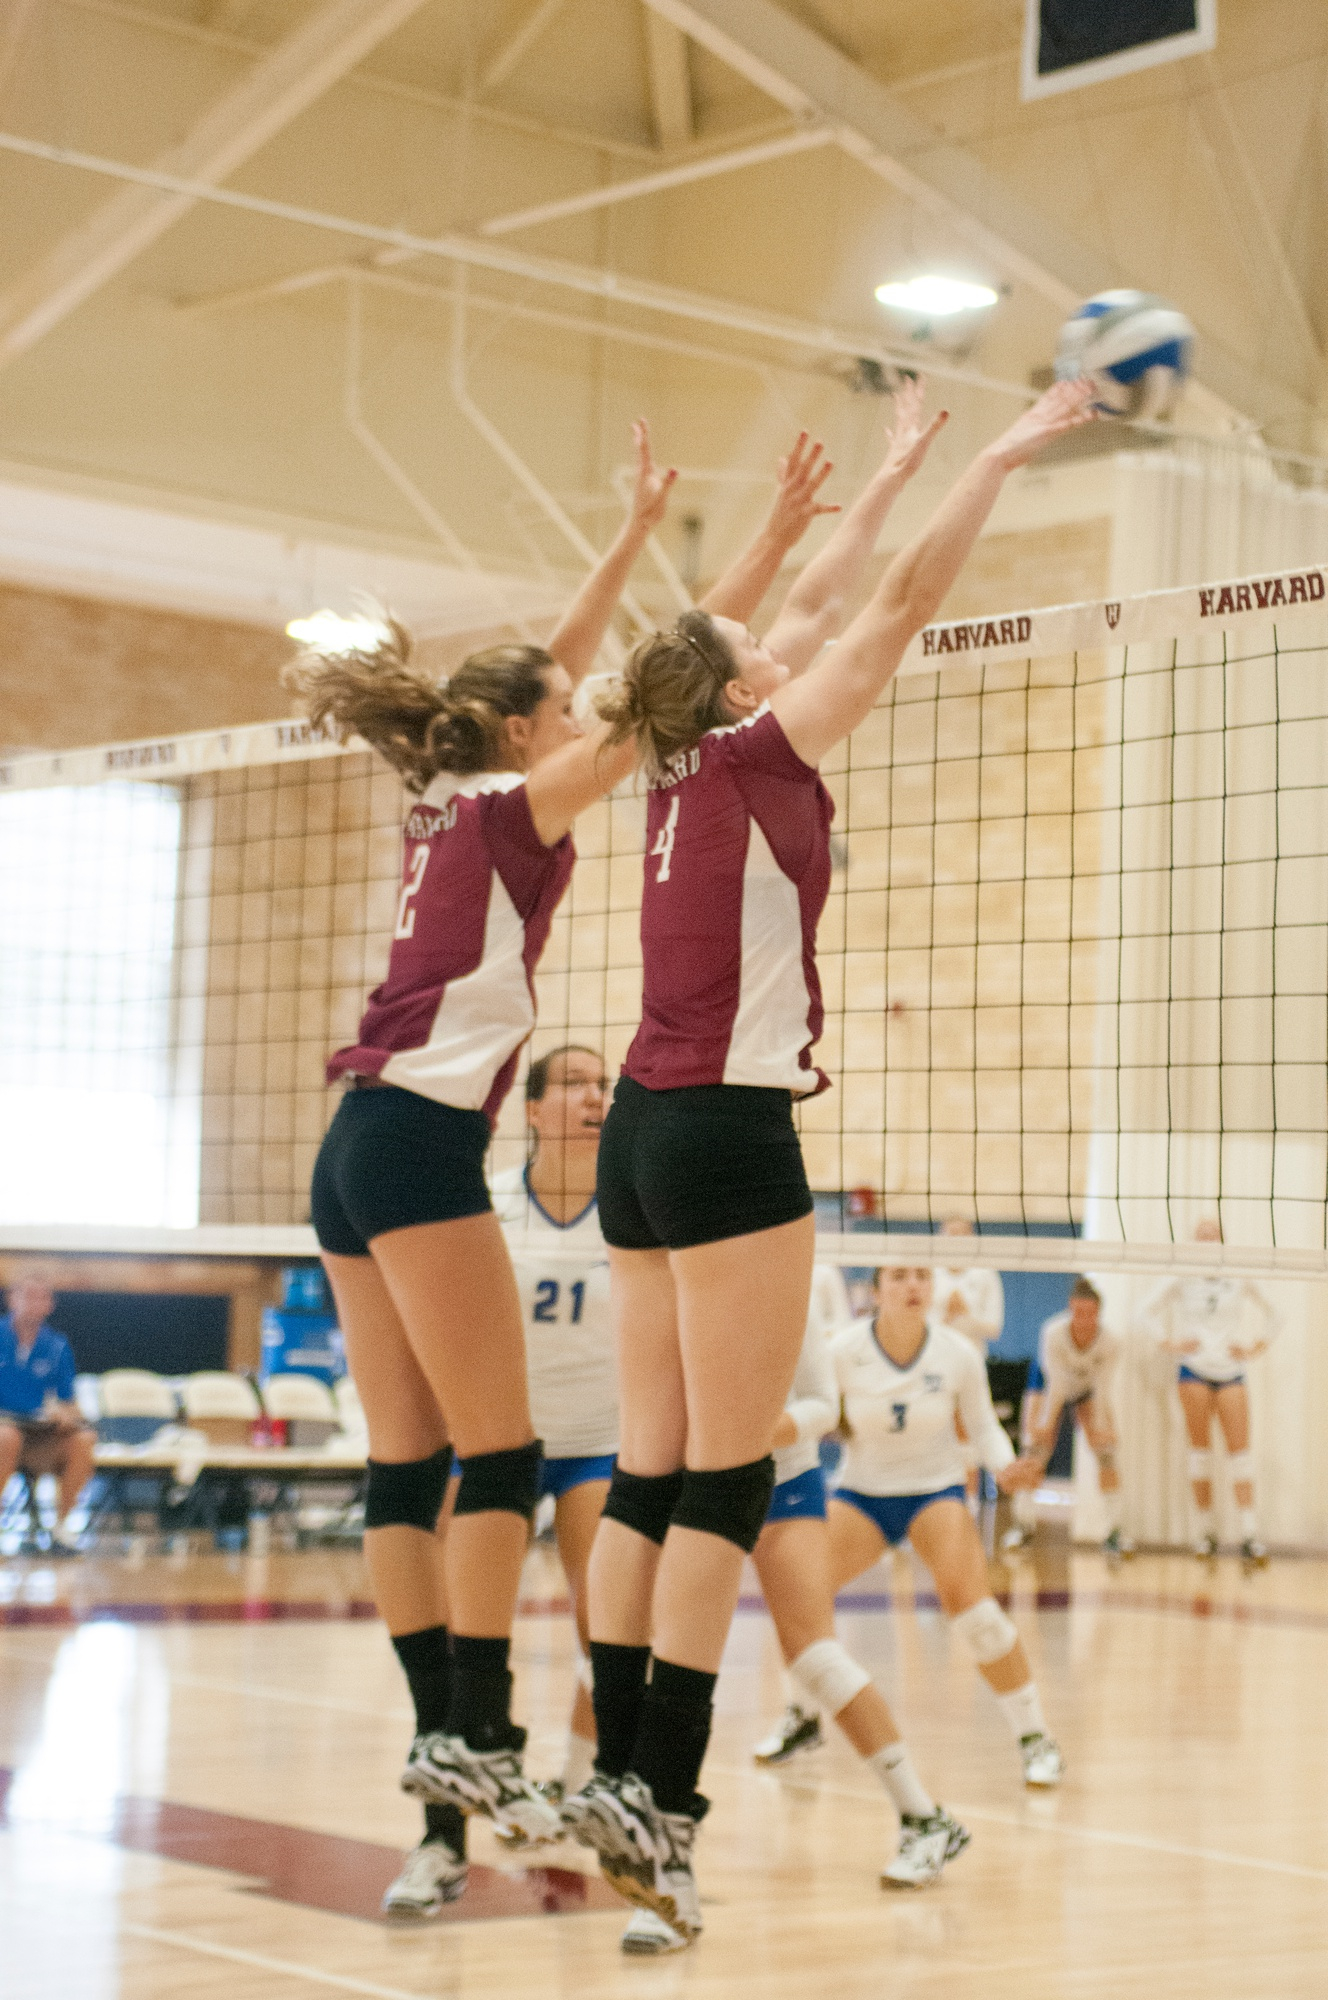 Dartmouth snapped the Harvard women's volleyball team's five-game win streak on Saturday, when the squad, shown here in earlier action, began Ivy League play.